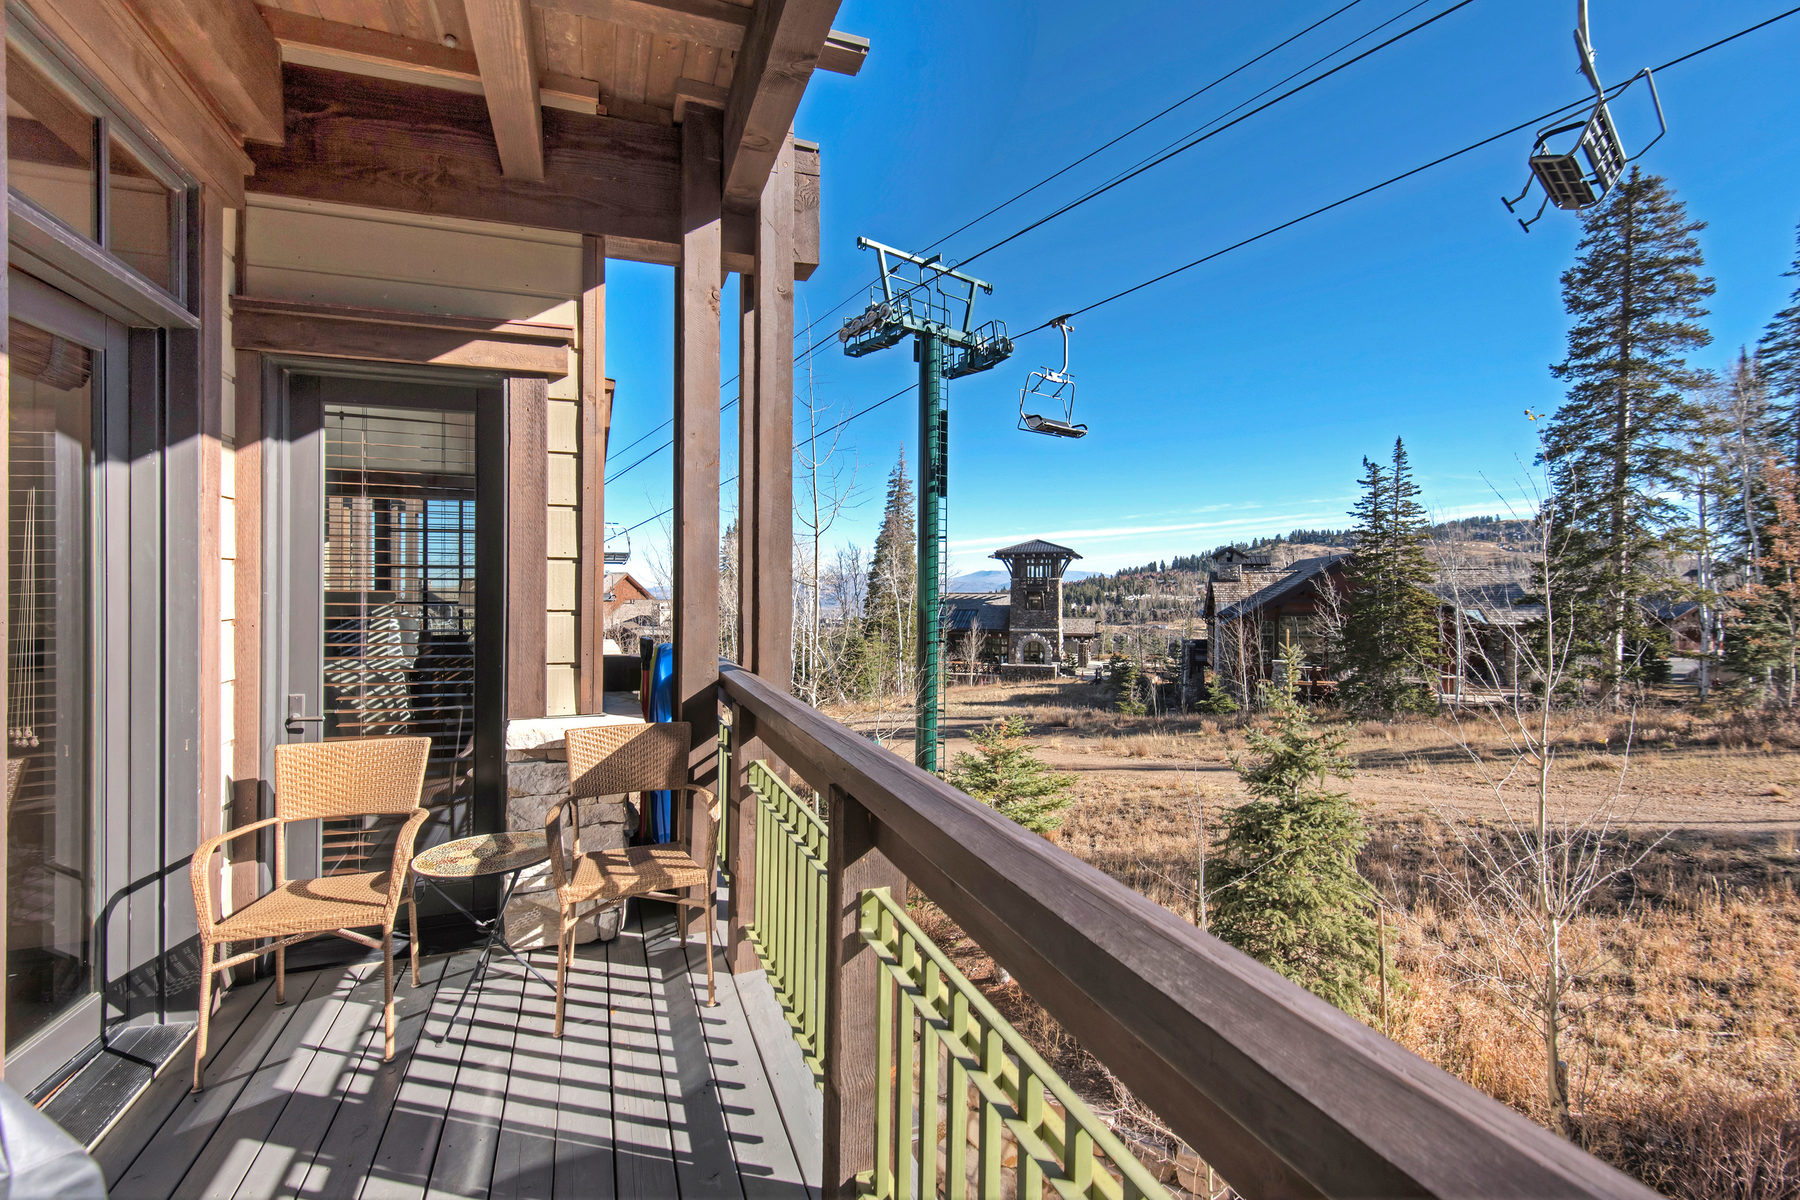 Additional photo for property listing at Ski In Ski Out Luxury Deer Valley Condo with Talisker Club Base Membership 8880 Empire Club Dr #212 Park City, Utah 84060 United States